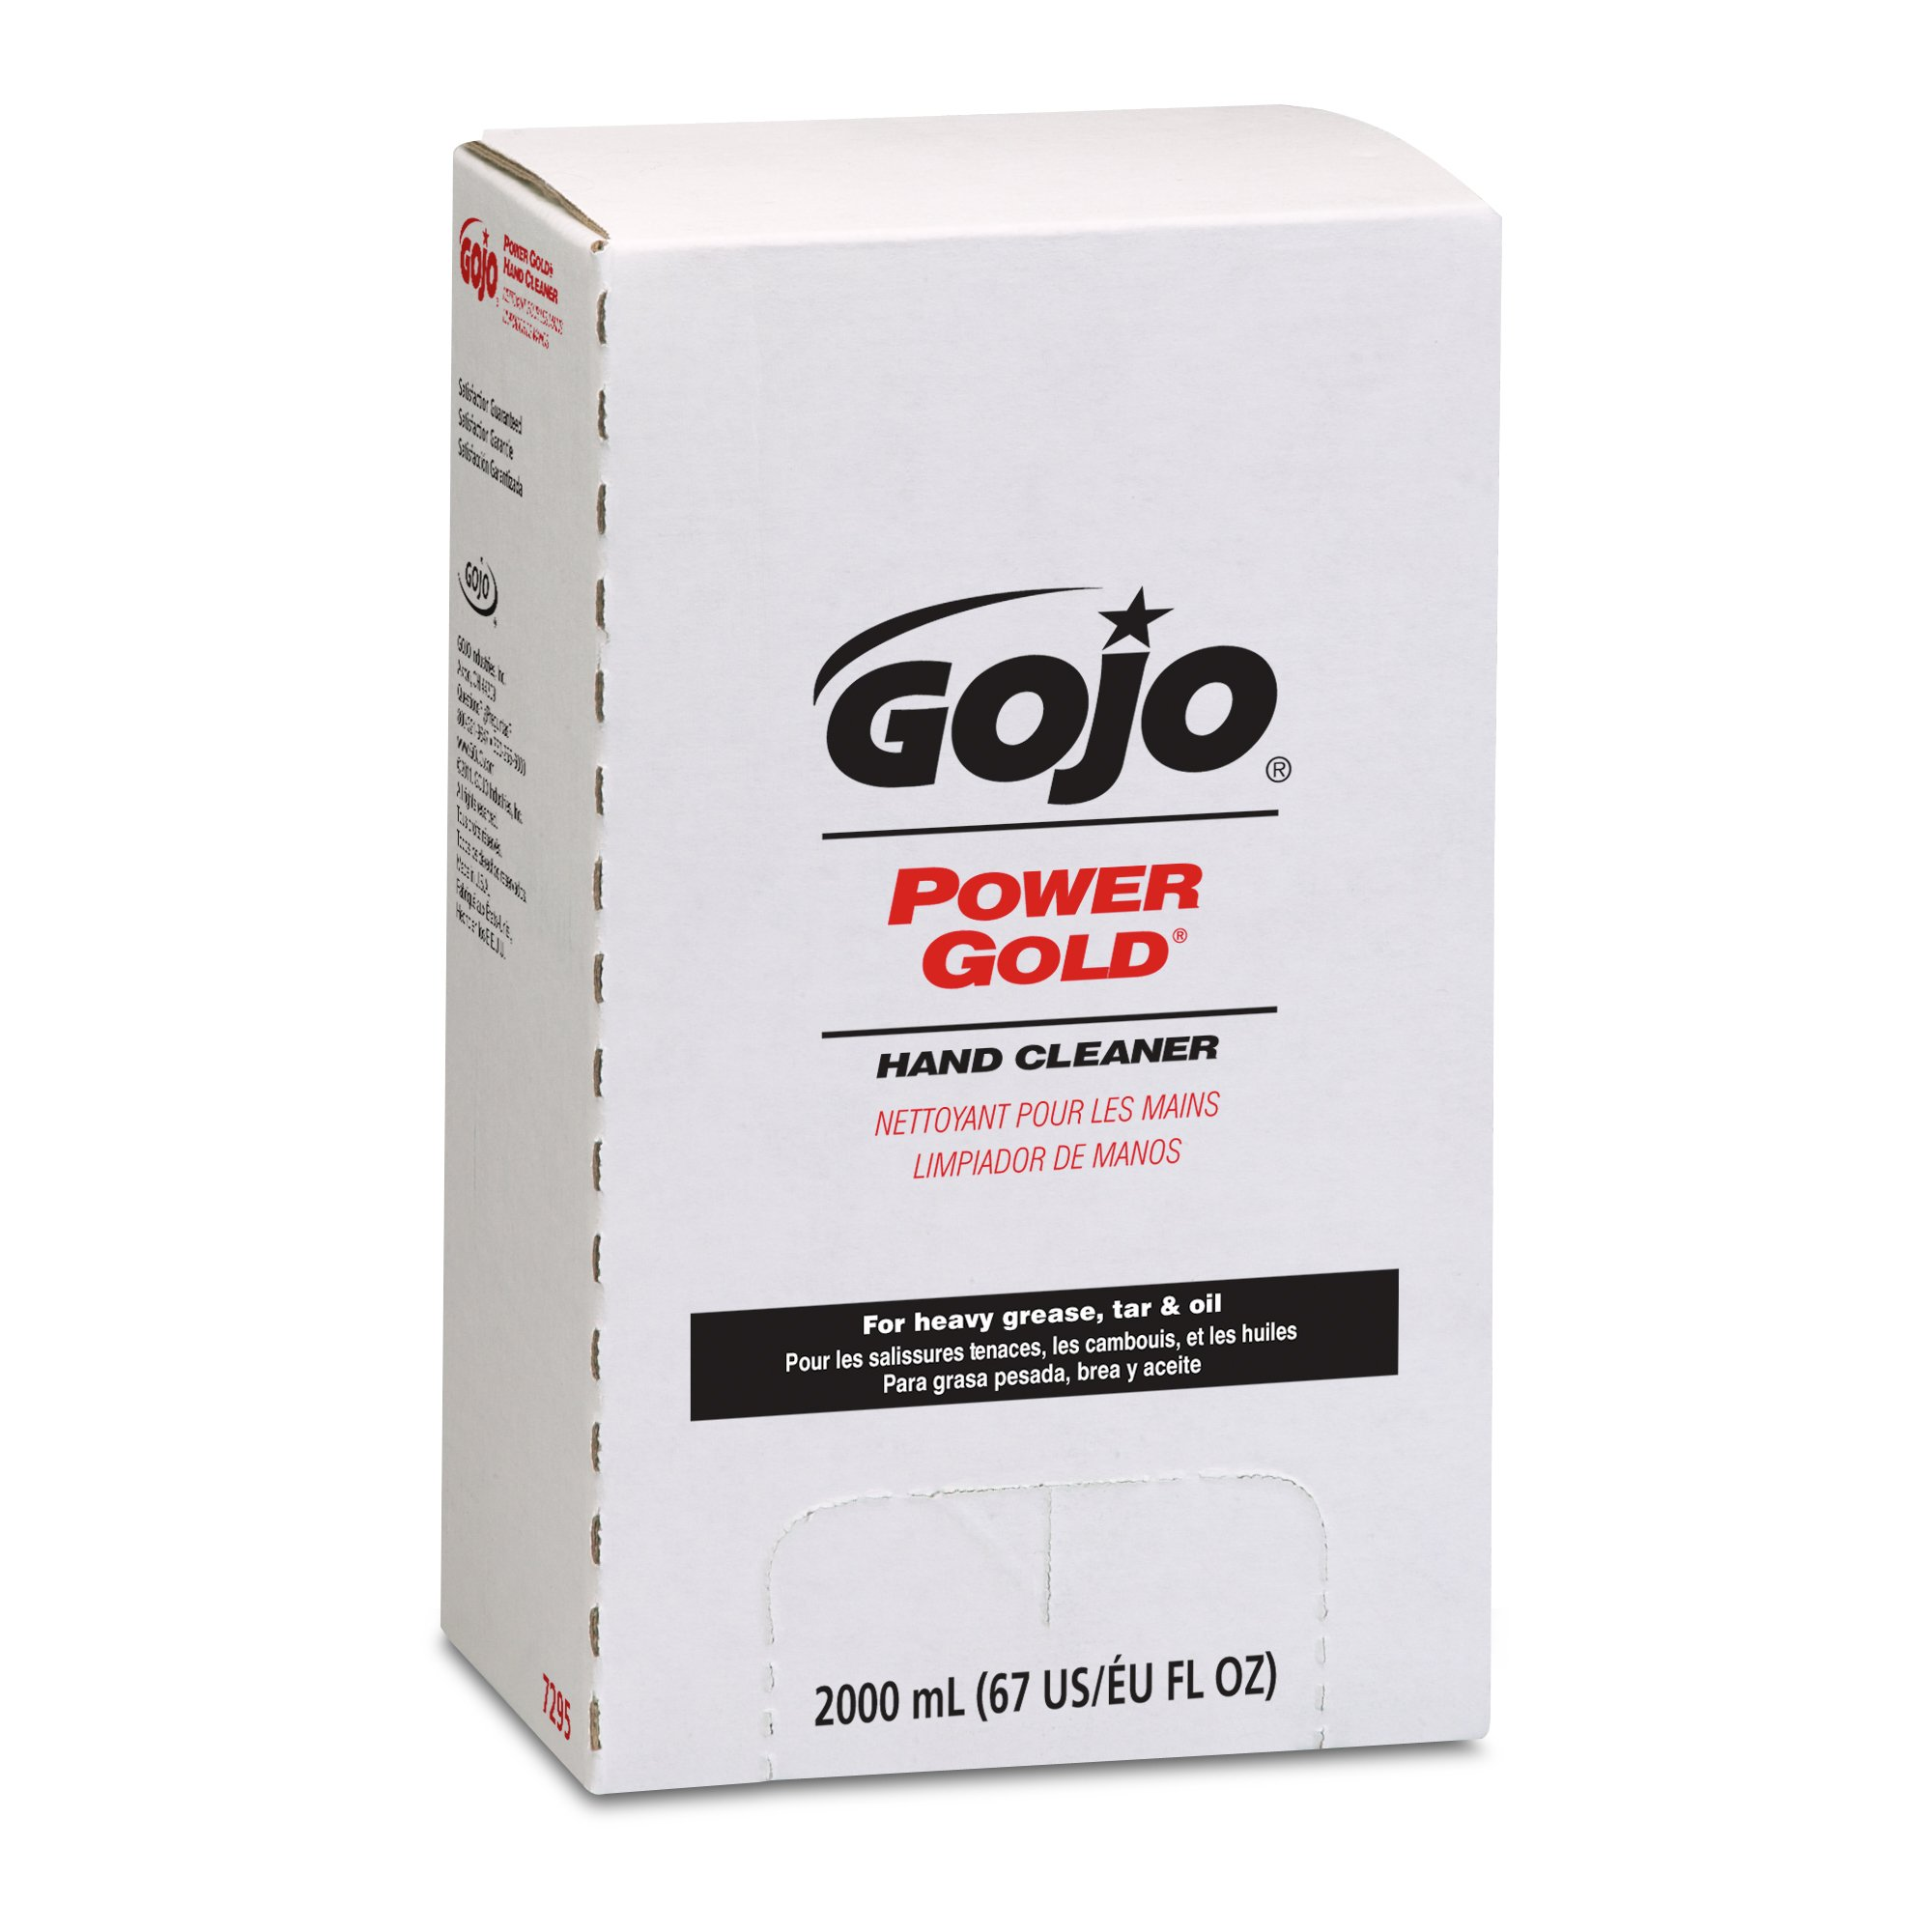 GOJO 7295 POWER GOLD Hand Cleaner, Citrus Scent, 2000mL Refill (Case of 4),Compatible with Dispenser #7200-01